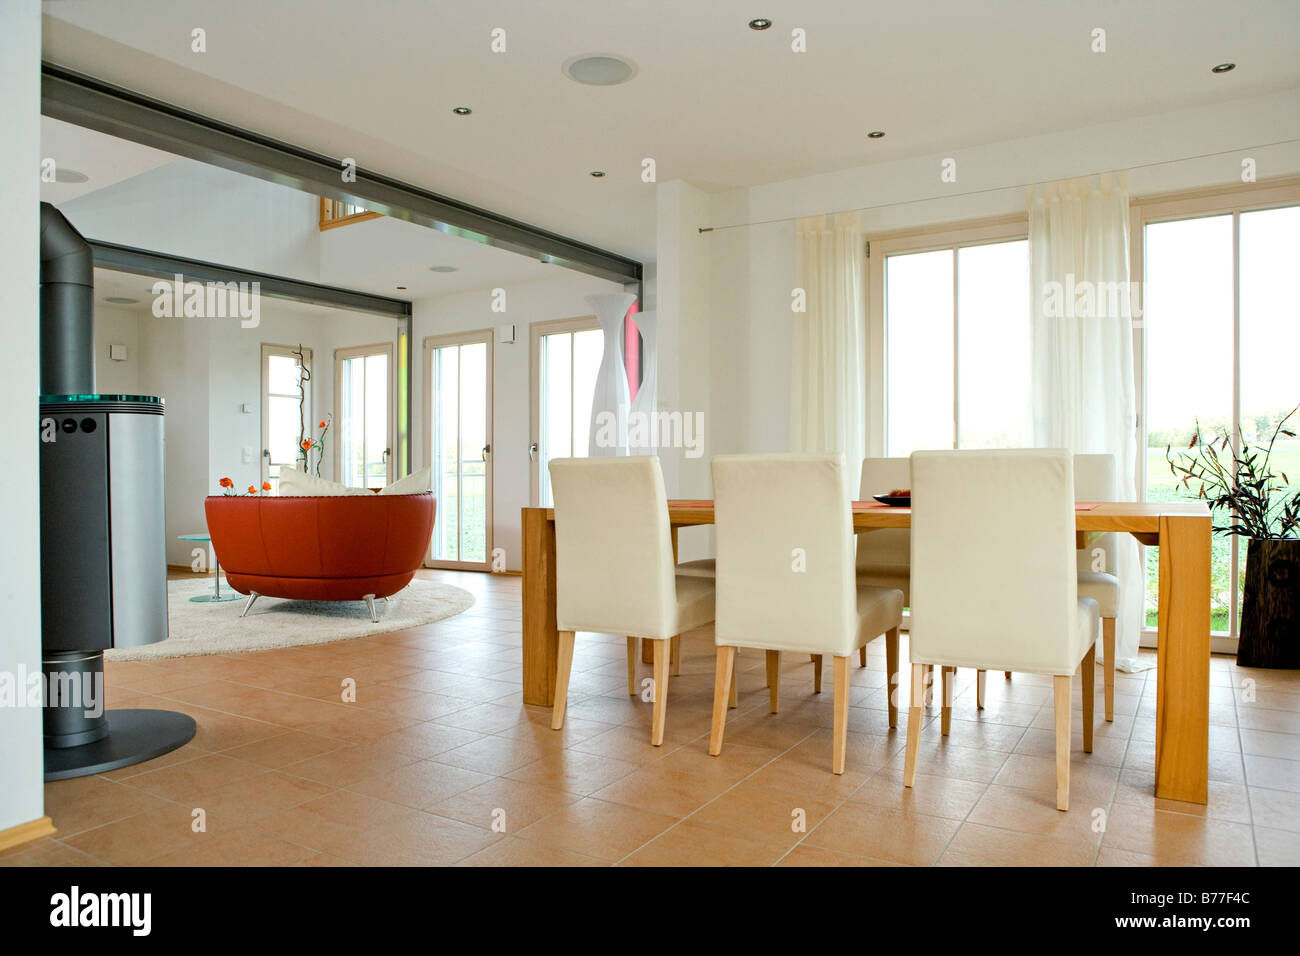 Esszimmer Modern Modernes Esszimmer Modern Dining Room Stock Photo 21678508 Alamy